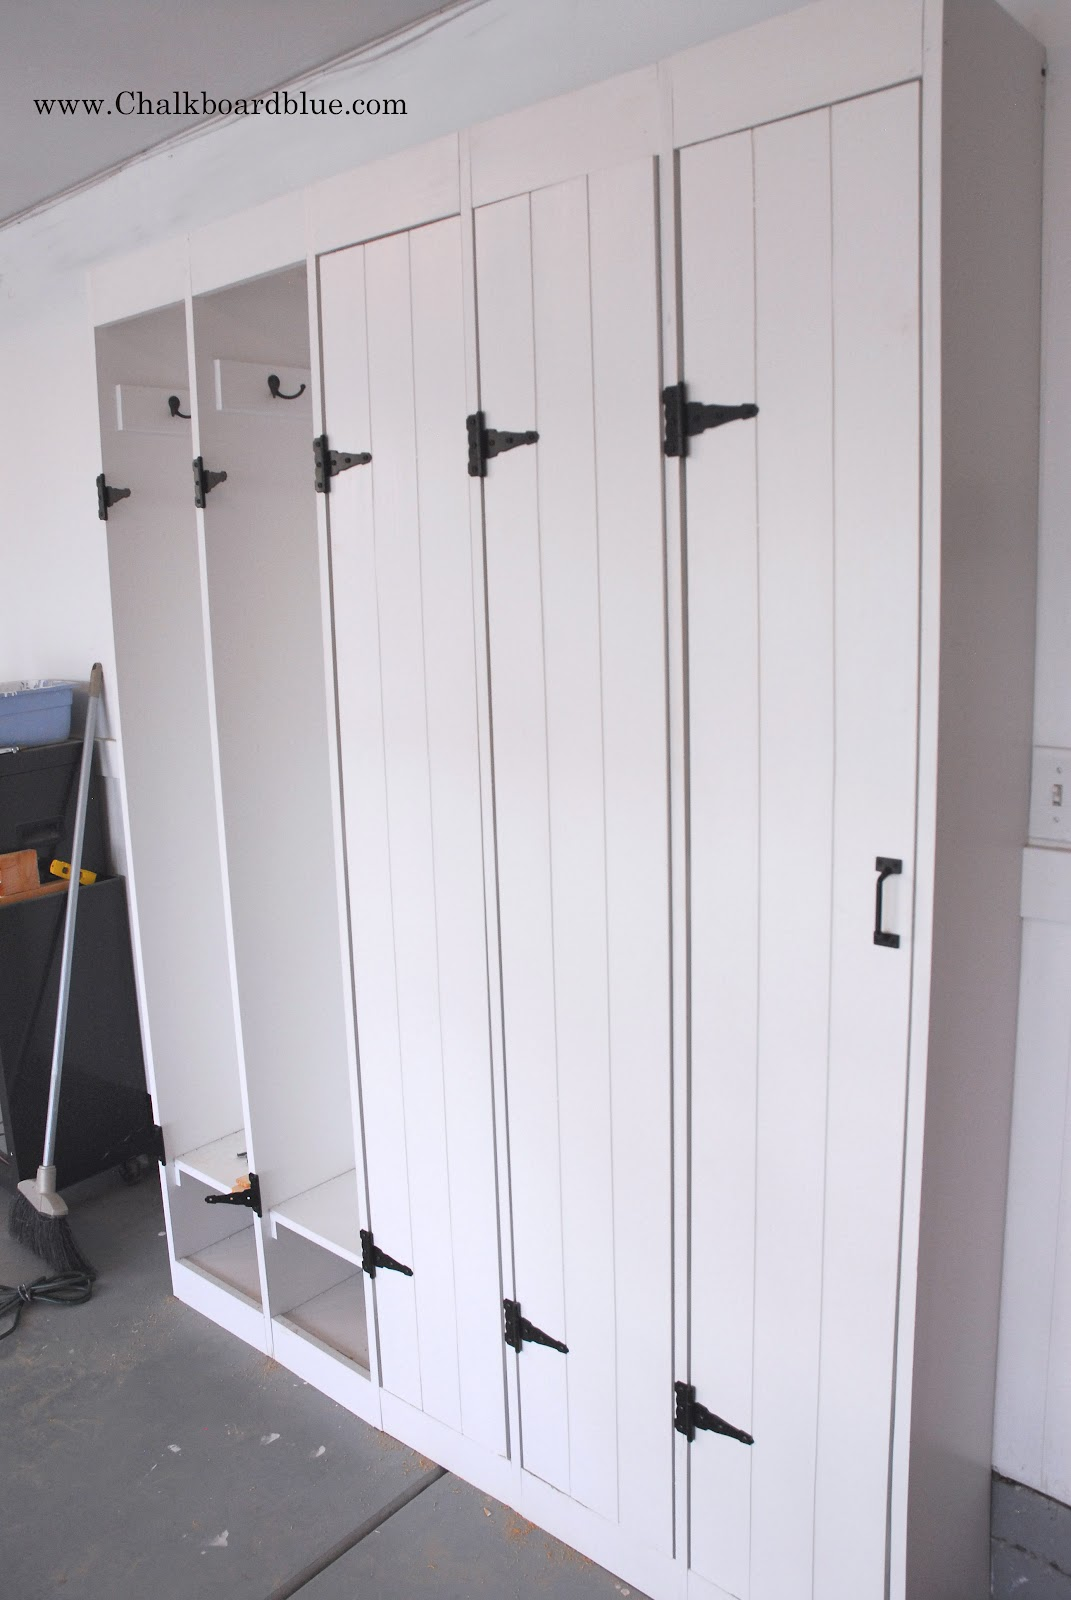 Chalkboard blue how i built our pottery barn lockers solutioingenieria Images